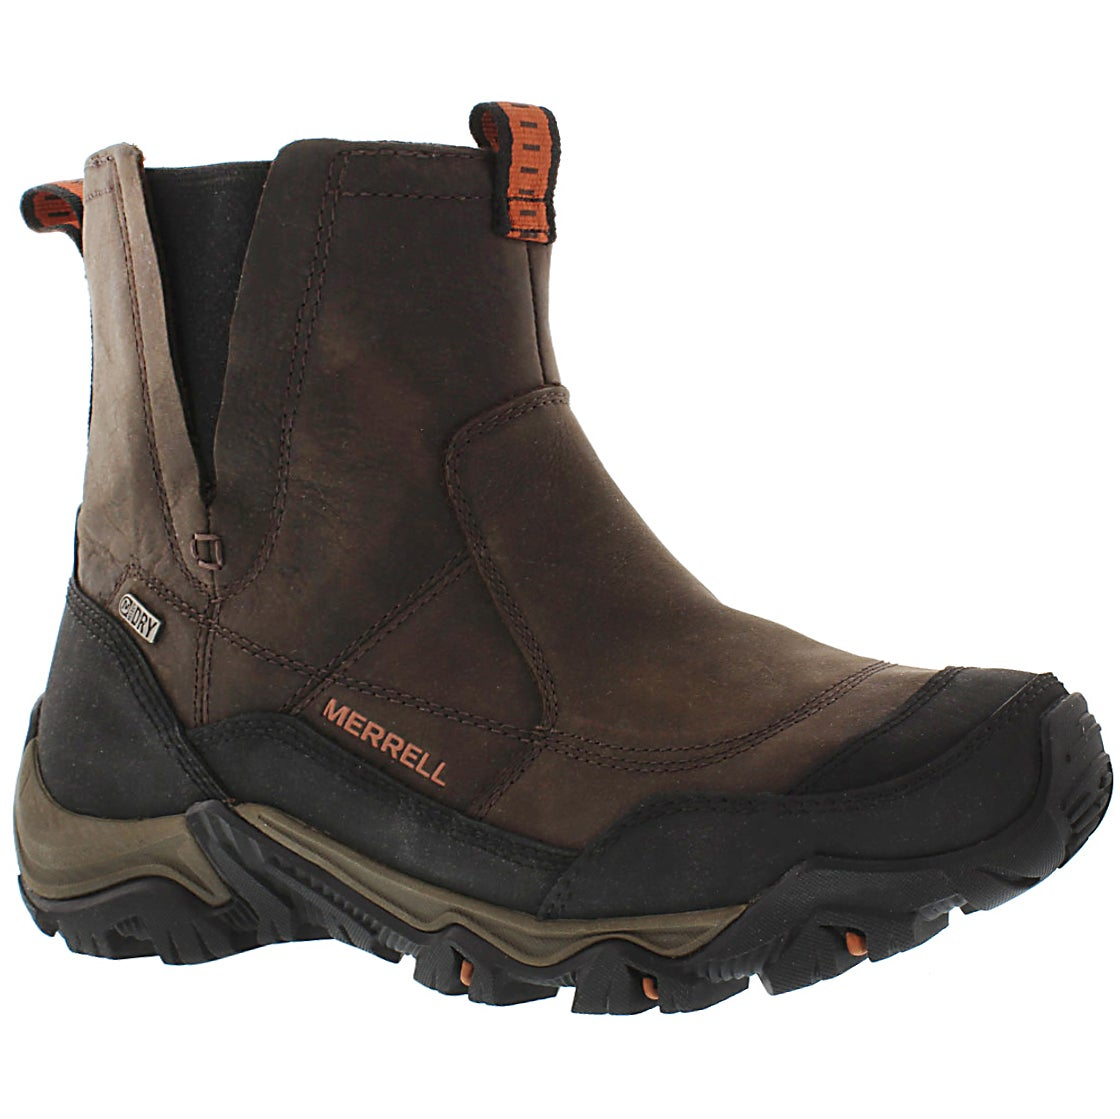 Men's POLARAND ROVE PULL brown waterproof boots